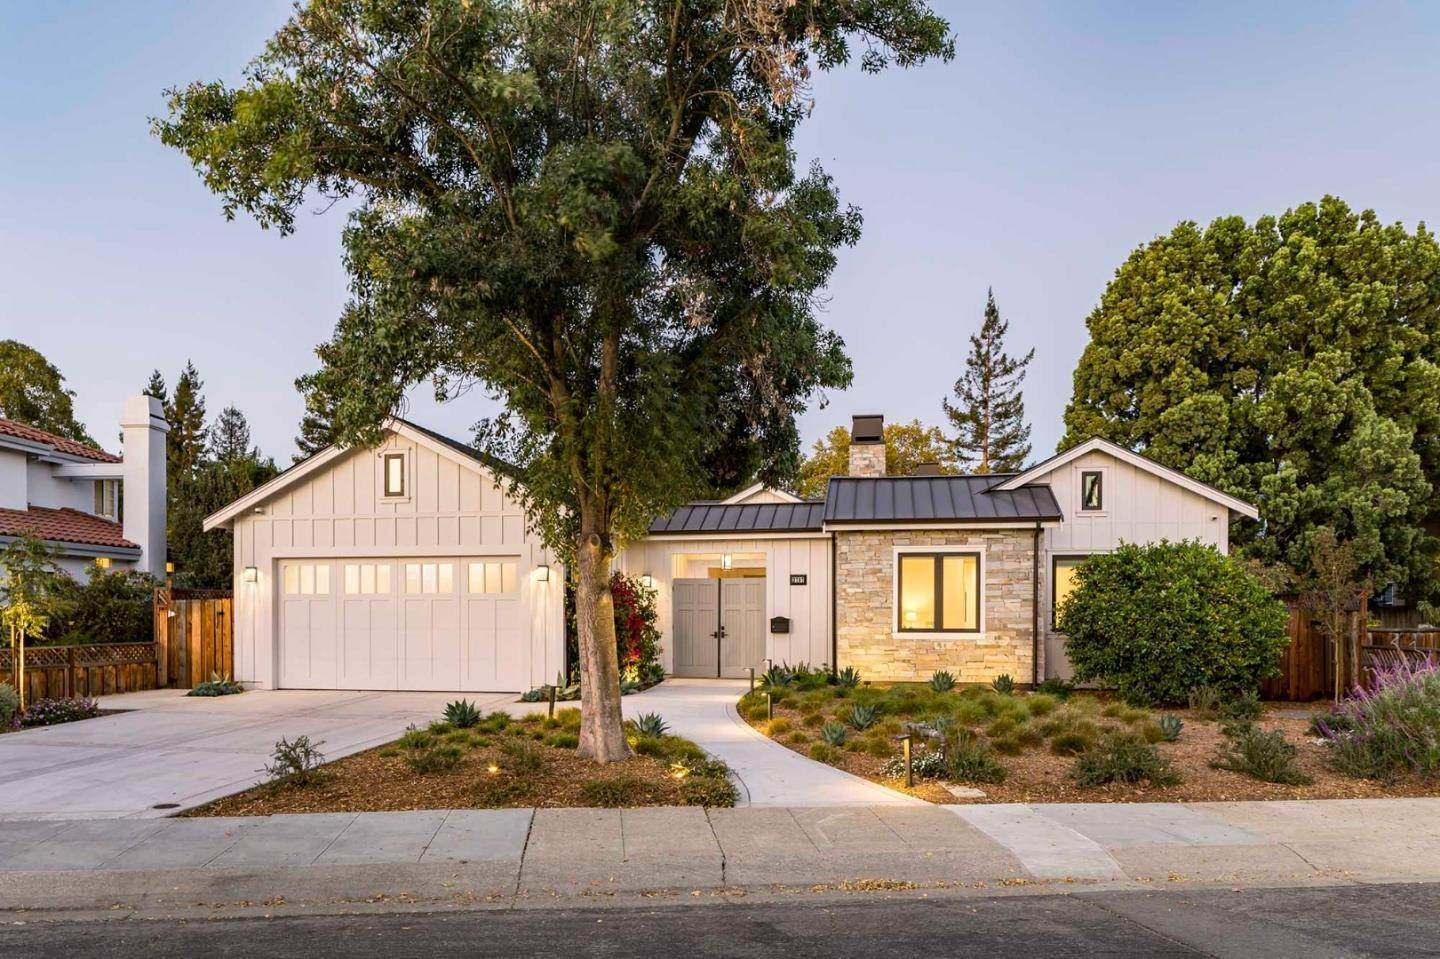 Single Family Homes for Sale at 2797 Ross Road Palo Alto, California 94303 United States